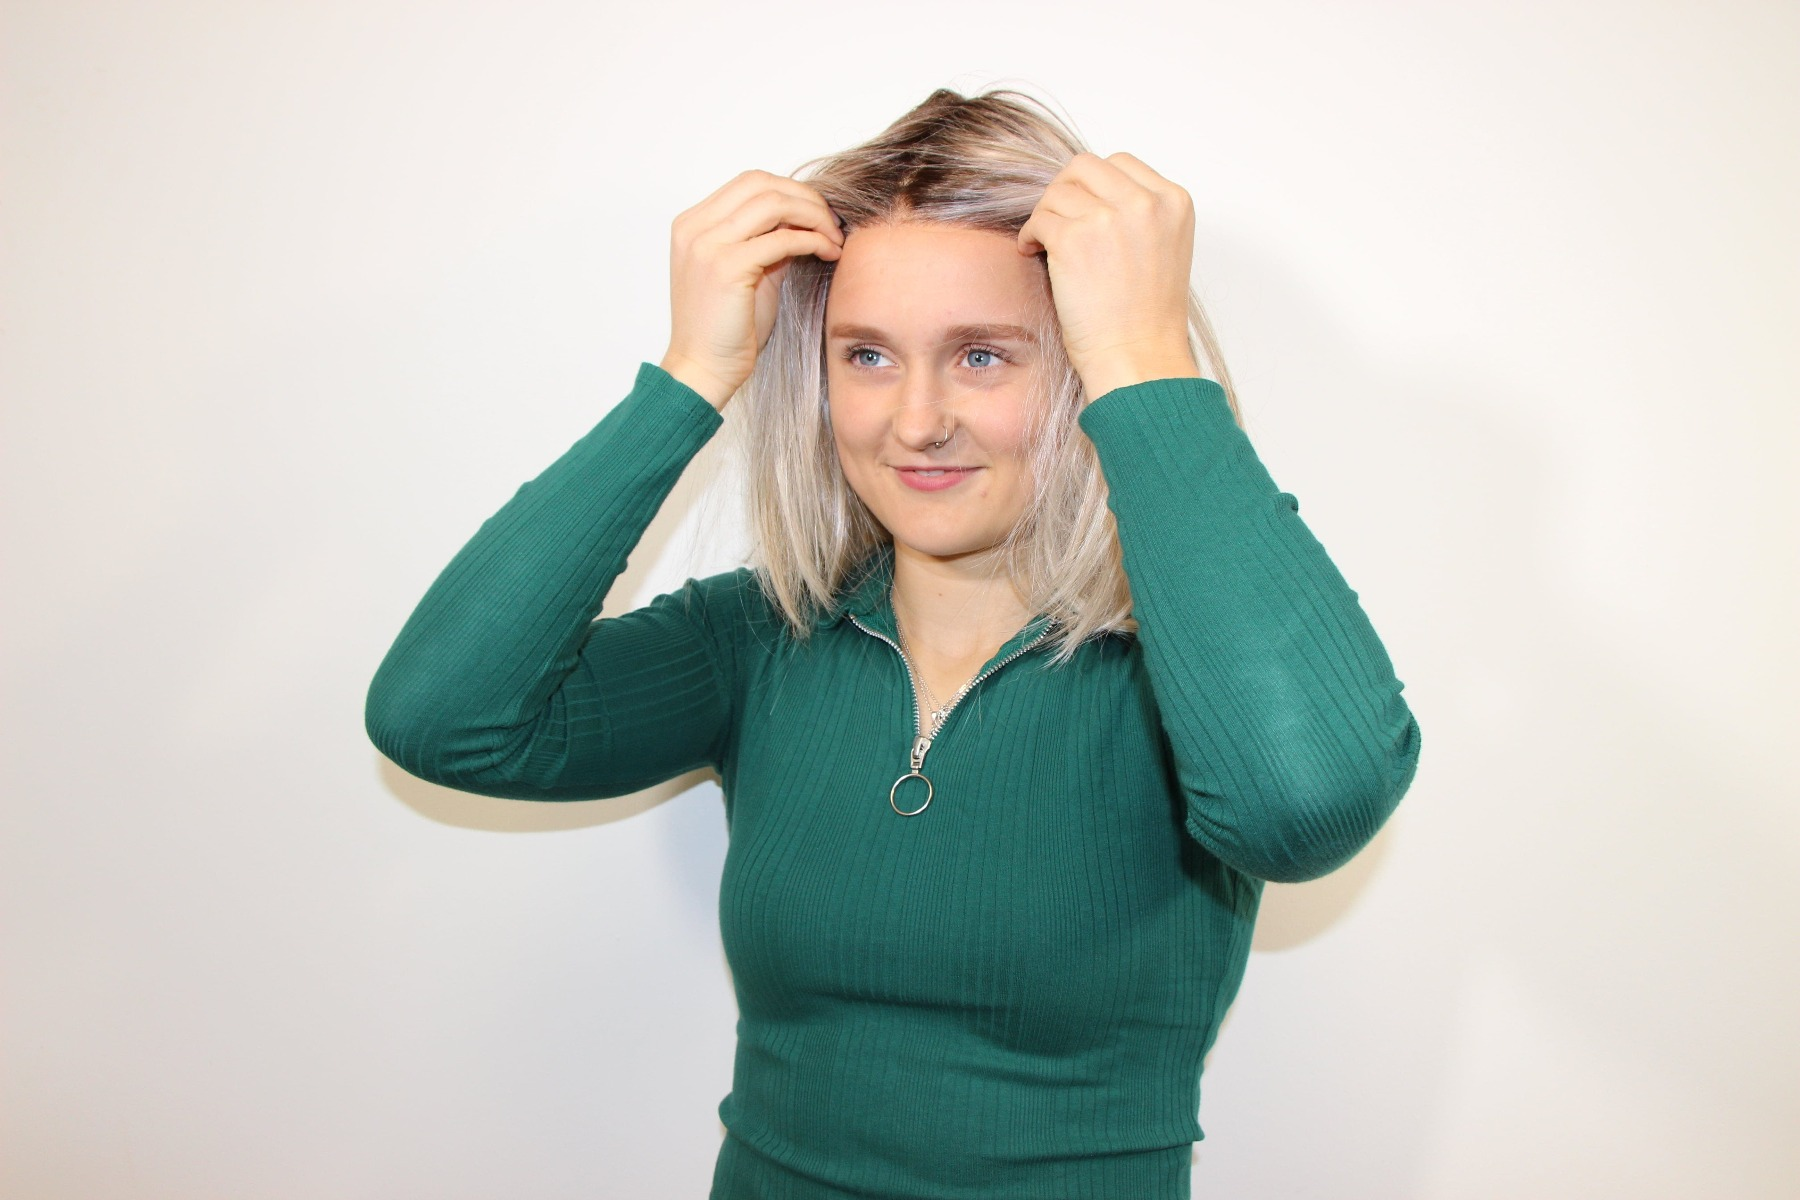 Lady aligning the wig ear points to position the wig securely on her head